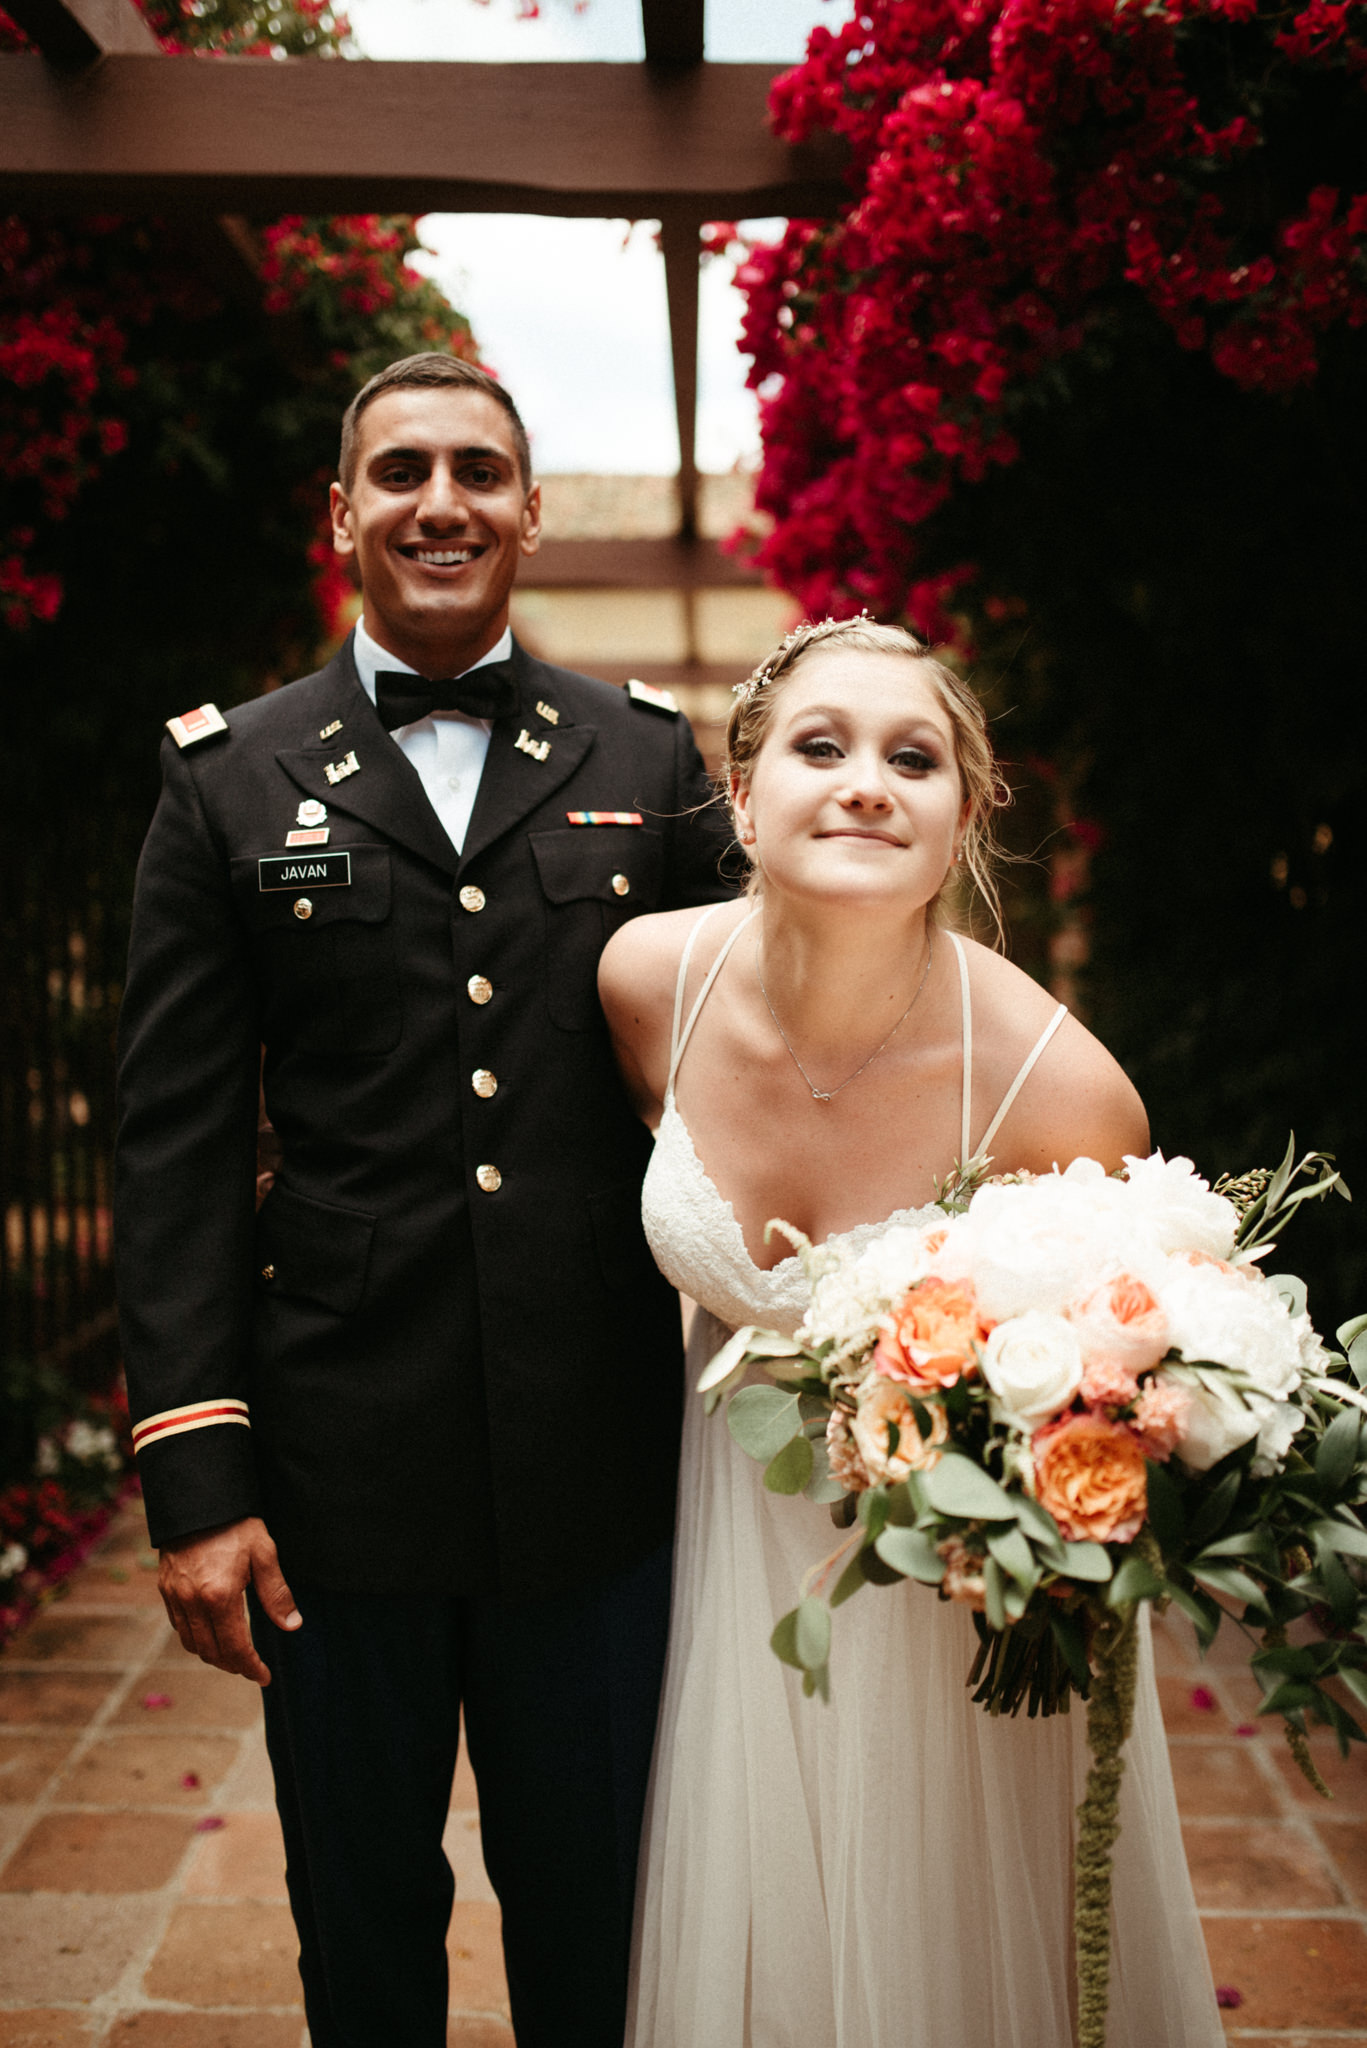 Zach and Rosalie - Franciscan Garden Wedding - San Juan Capistrano - The Mission - Southern California Wedding Photographer-5303.jpg